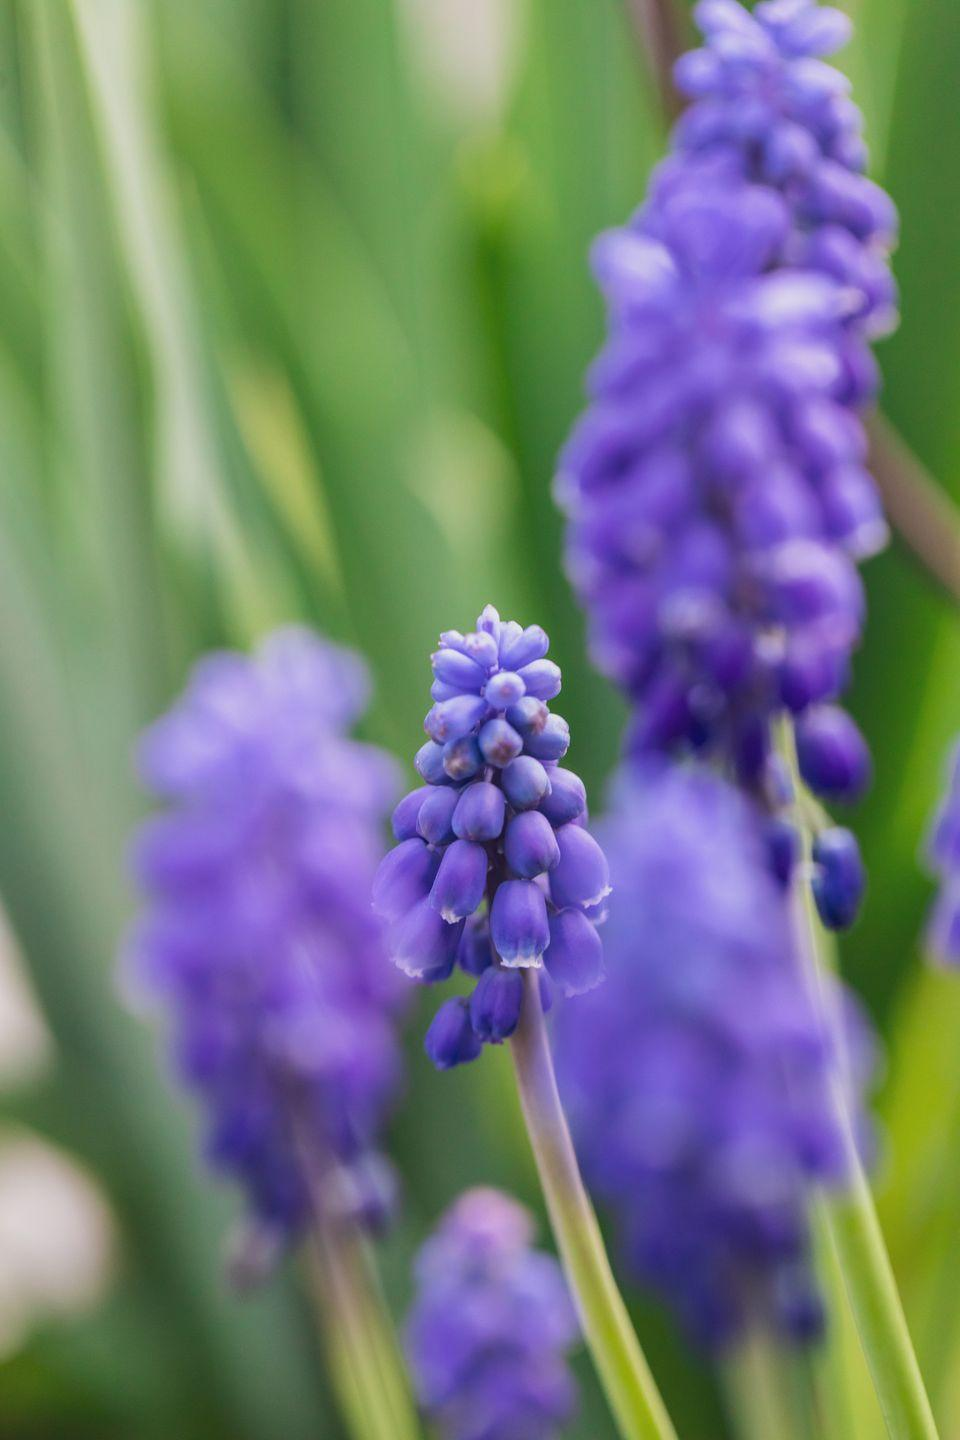 """<p>A tiny-but-mighty little bulb, grape hyacinth naturalizes readily, so you'll have more and more of these charming purple or white flowers every year. Their scent is slightly reminiscent of, yes, you guessed it: grapes! Plant in the fall for spring flowers and make sure they're in a spot where they'll get full sun.</p><p> <a class=""""link rapid-noclick-resp"""" href=""""https://www.amazon.com/15-Grape-Hyacinth-Muscari-Armeniacum/dp/B07PZ8NH8M/?tag=syn-yahoo-20&ascsubtag=%5Bartid%7C2164.g.35511393%5Bsrc%7Cyahoo-us"""" rel=""""nofollow noopener"""" target=""""_blank"""" data-ylk=""""slk:SHOP GRAPE HYACINTHS"""">SHOP GRAPE HYACINTHS</a></p>"""